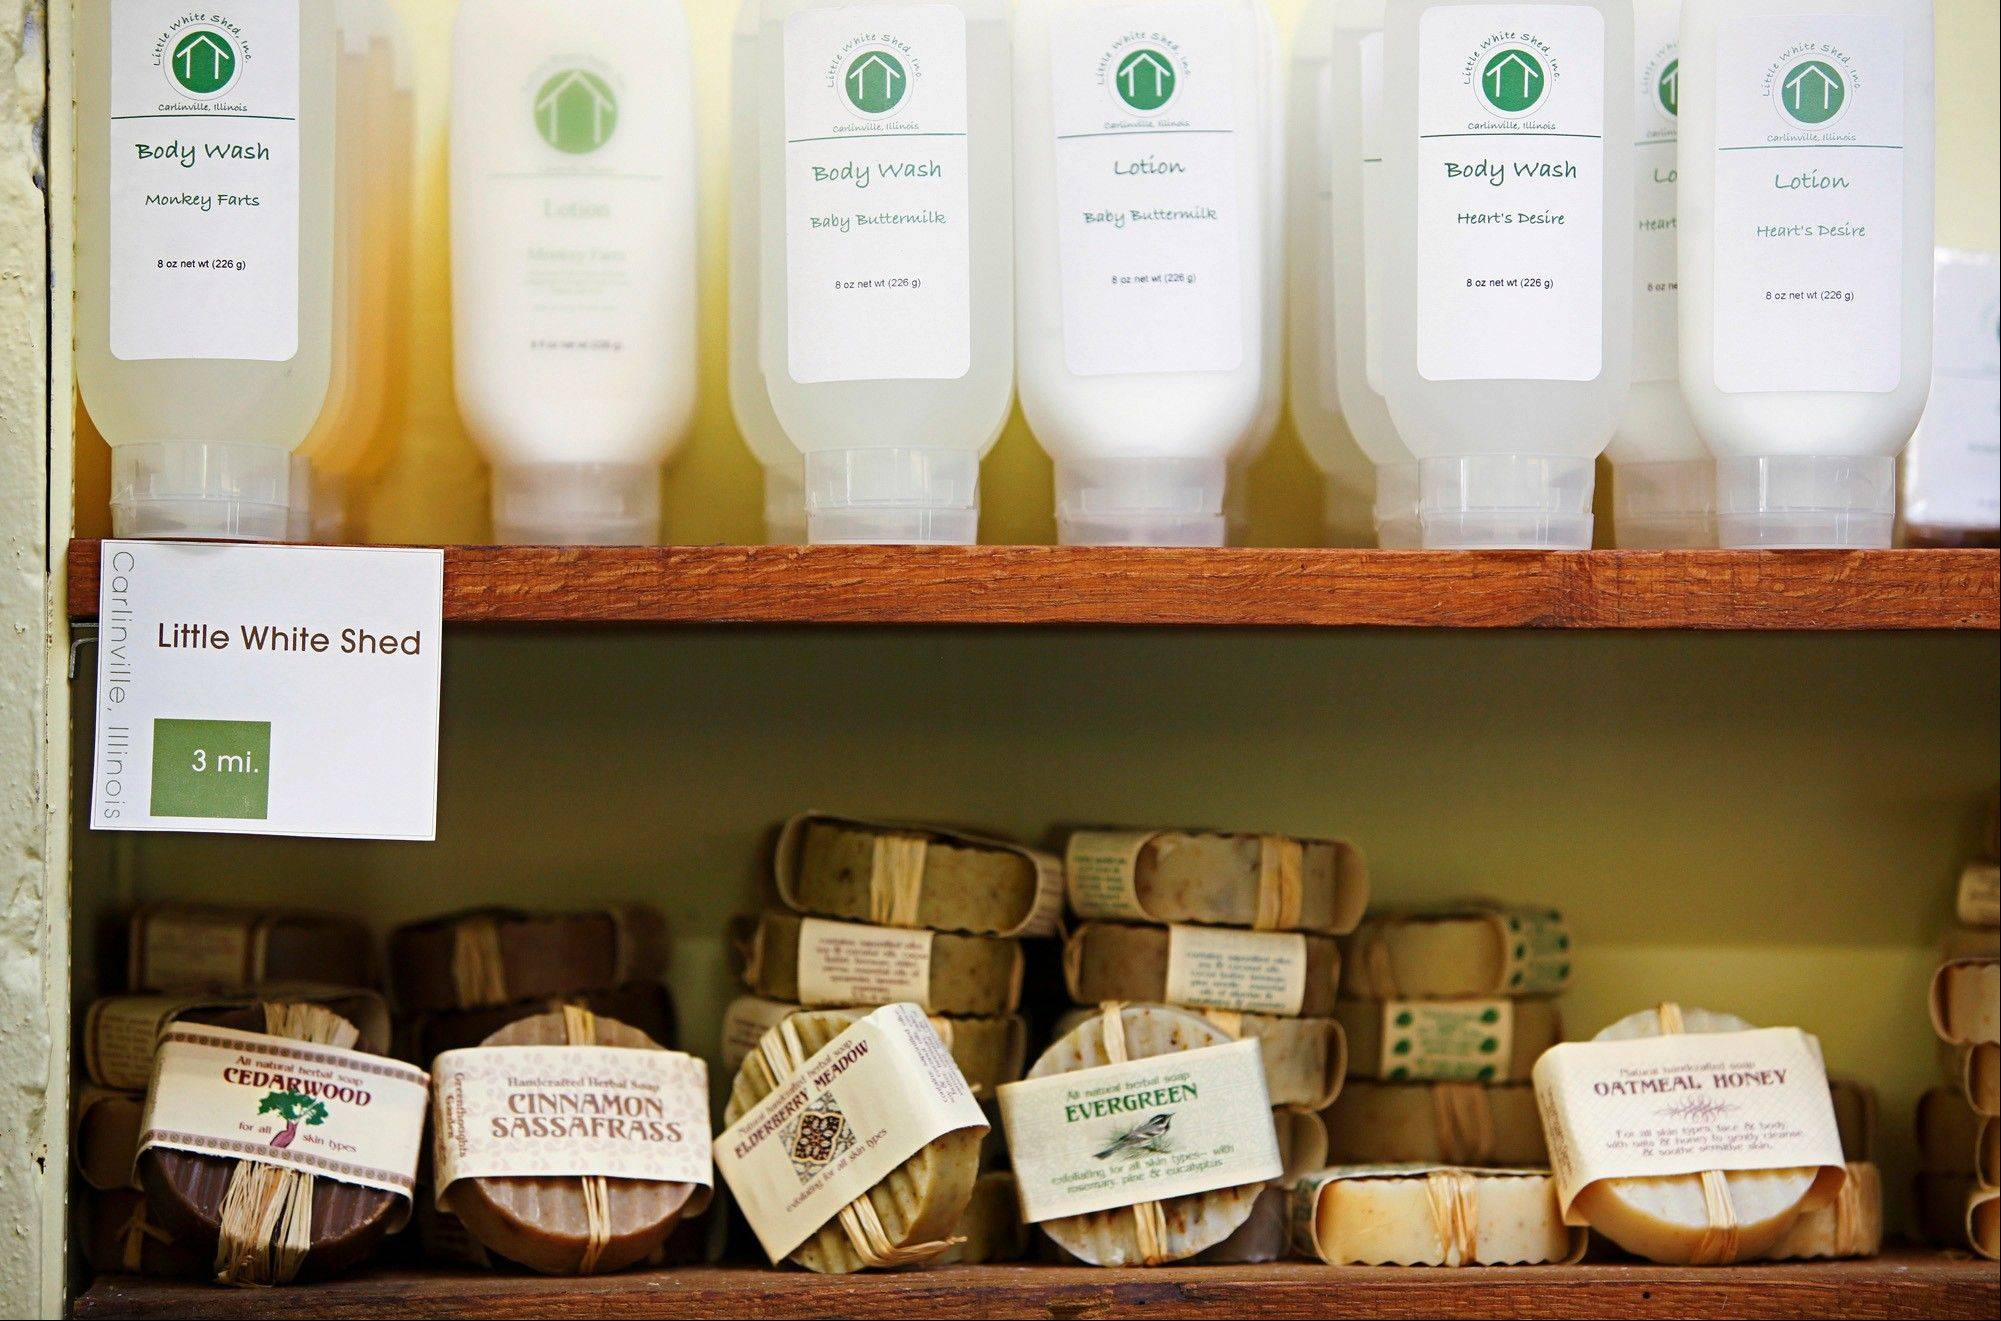 Soaps, lotions, and body wash all made in Carlinville, Ill., await purchase at the Market On The Square in downtown Carlinville. The store sells only products made, grown or processed in Illinois.